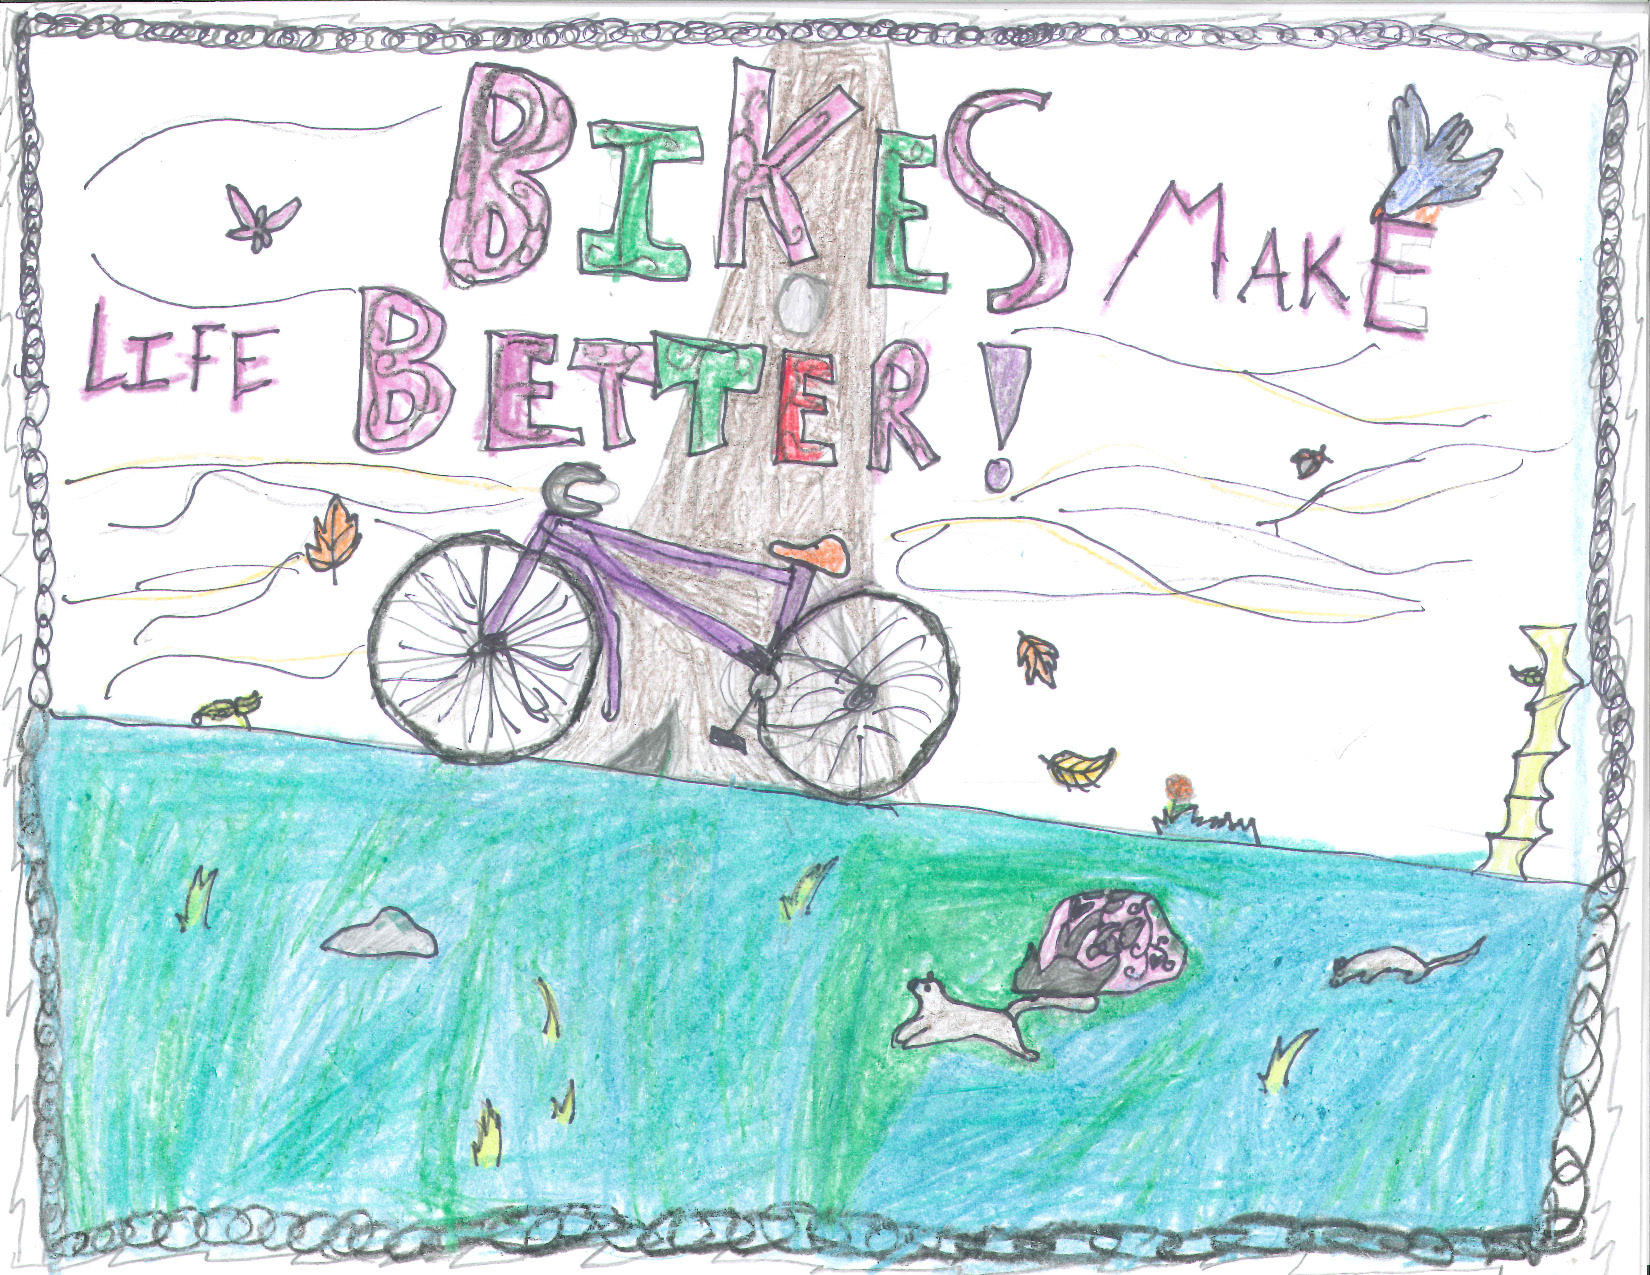 Washington State 2013 Bike Poster Contest First Place Winner